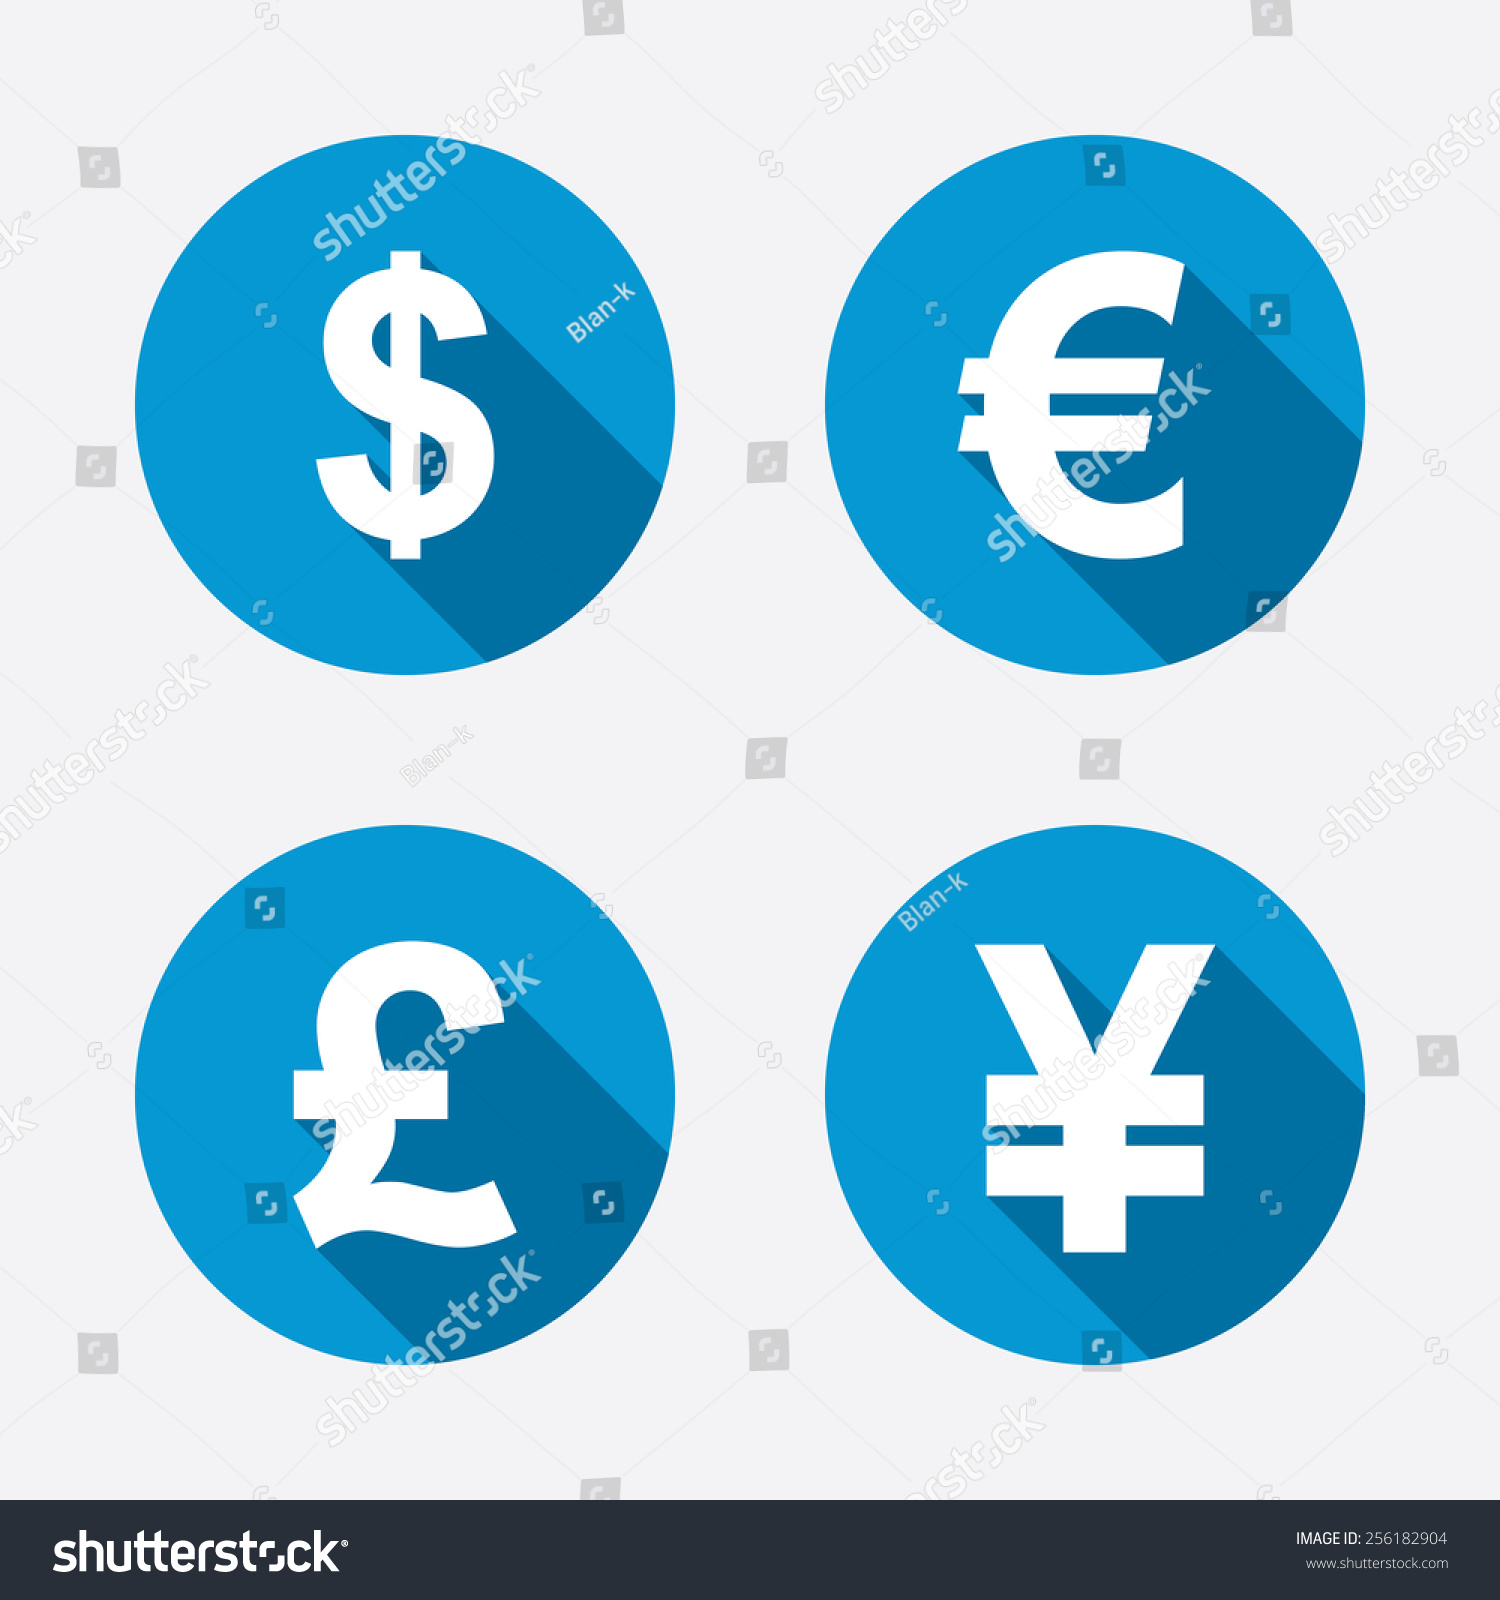 Dollar euro pound yen currency icons stock vector 256182904 dollar euro pound and yen currency icons usd eur gbp and biocorpaavc Gallery